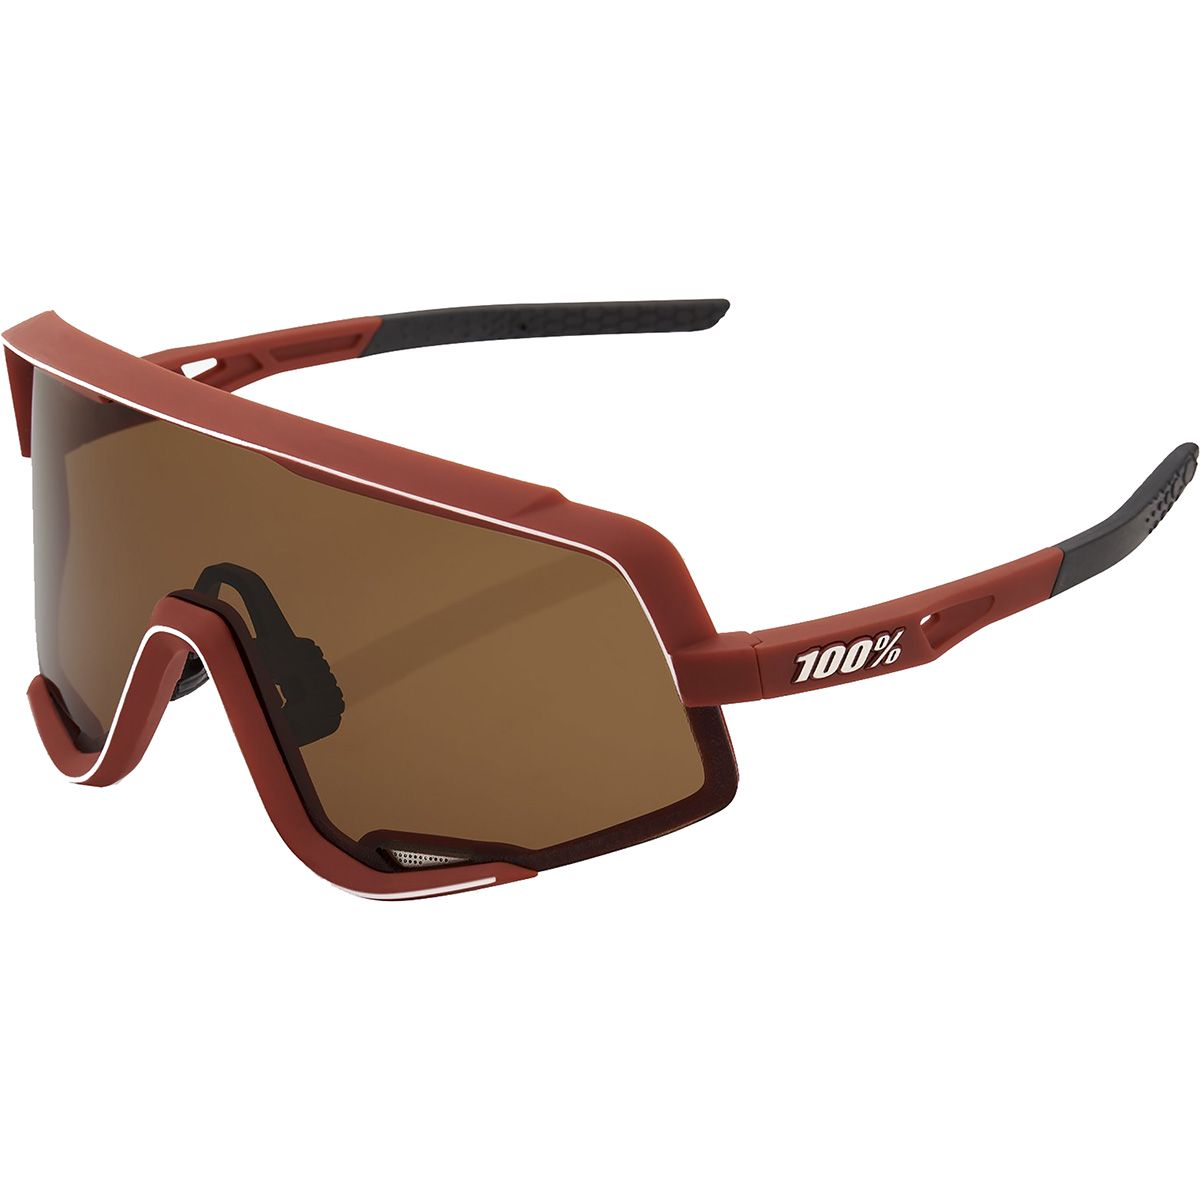 Image of 100% Glendale Sportbrille (Rot)